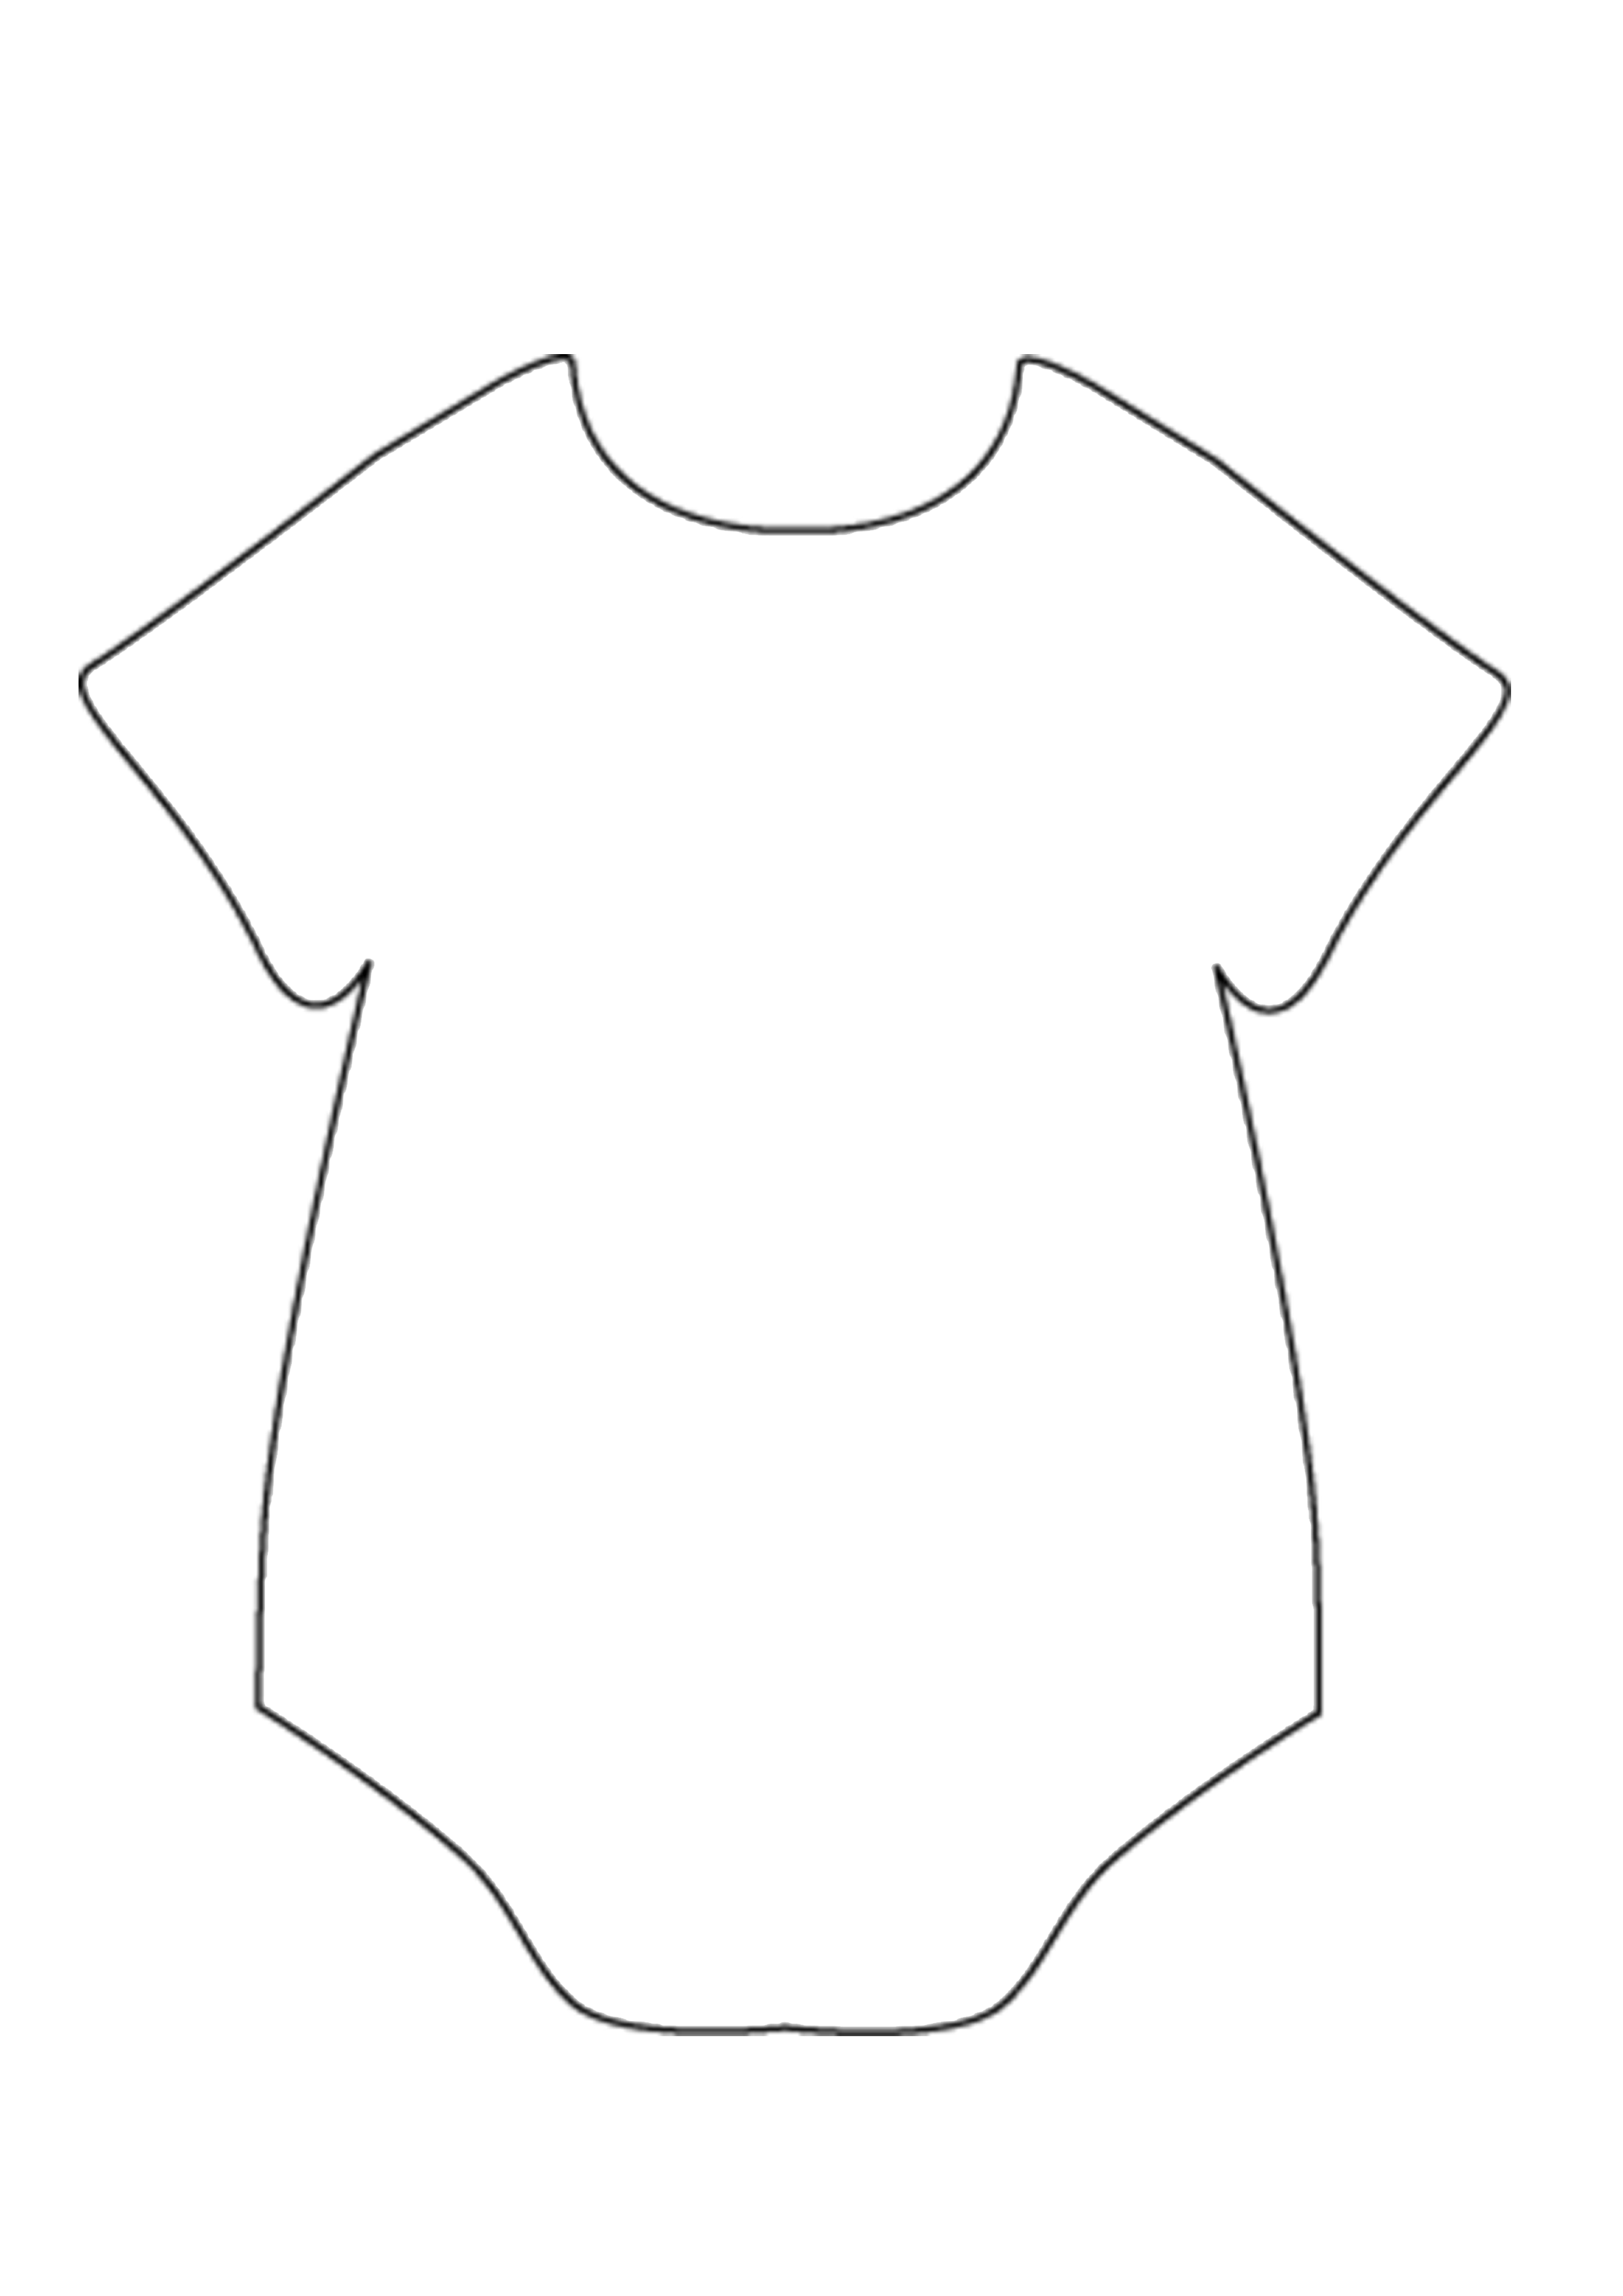 Baby Onesie Outline Free Download Clip Art.